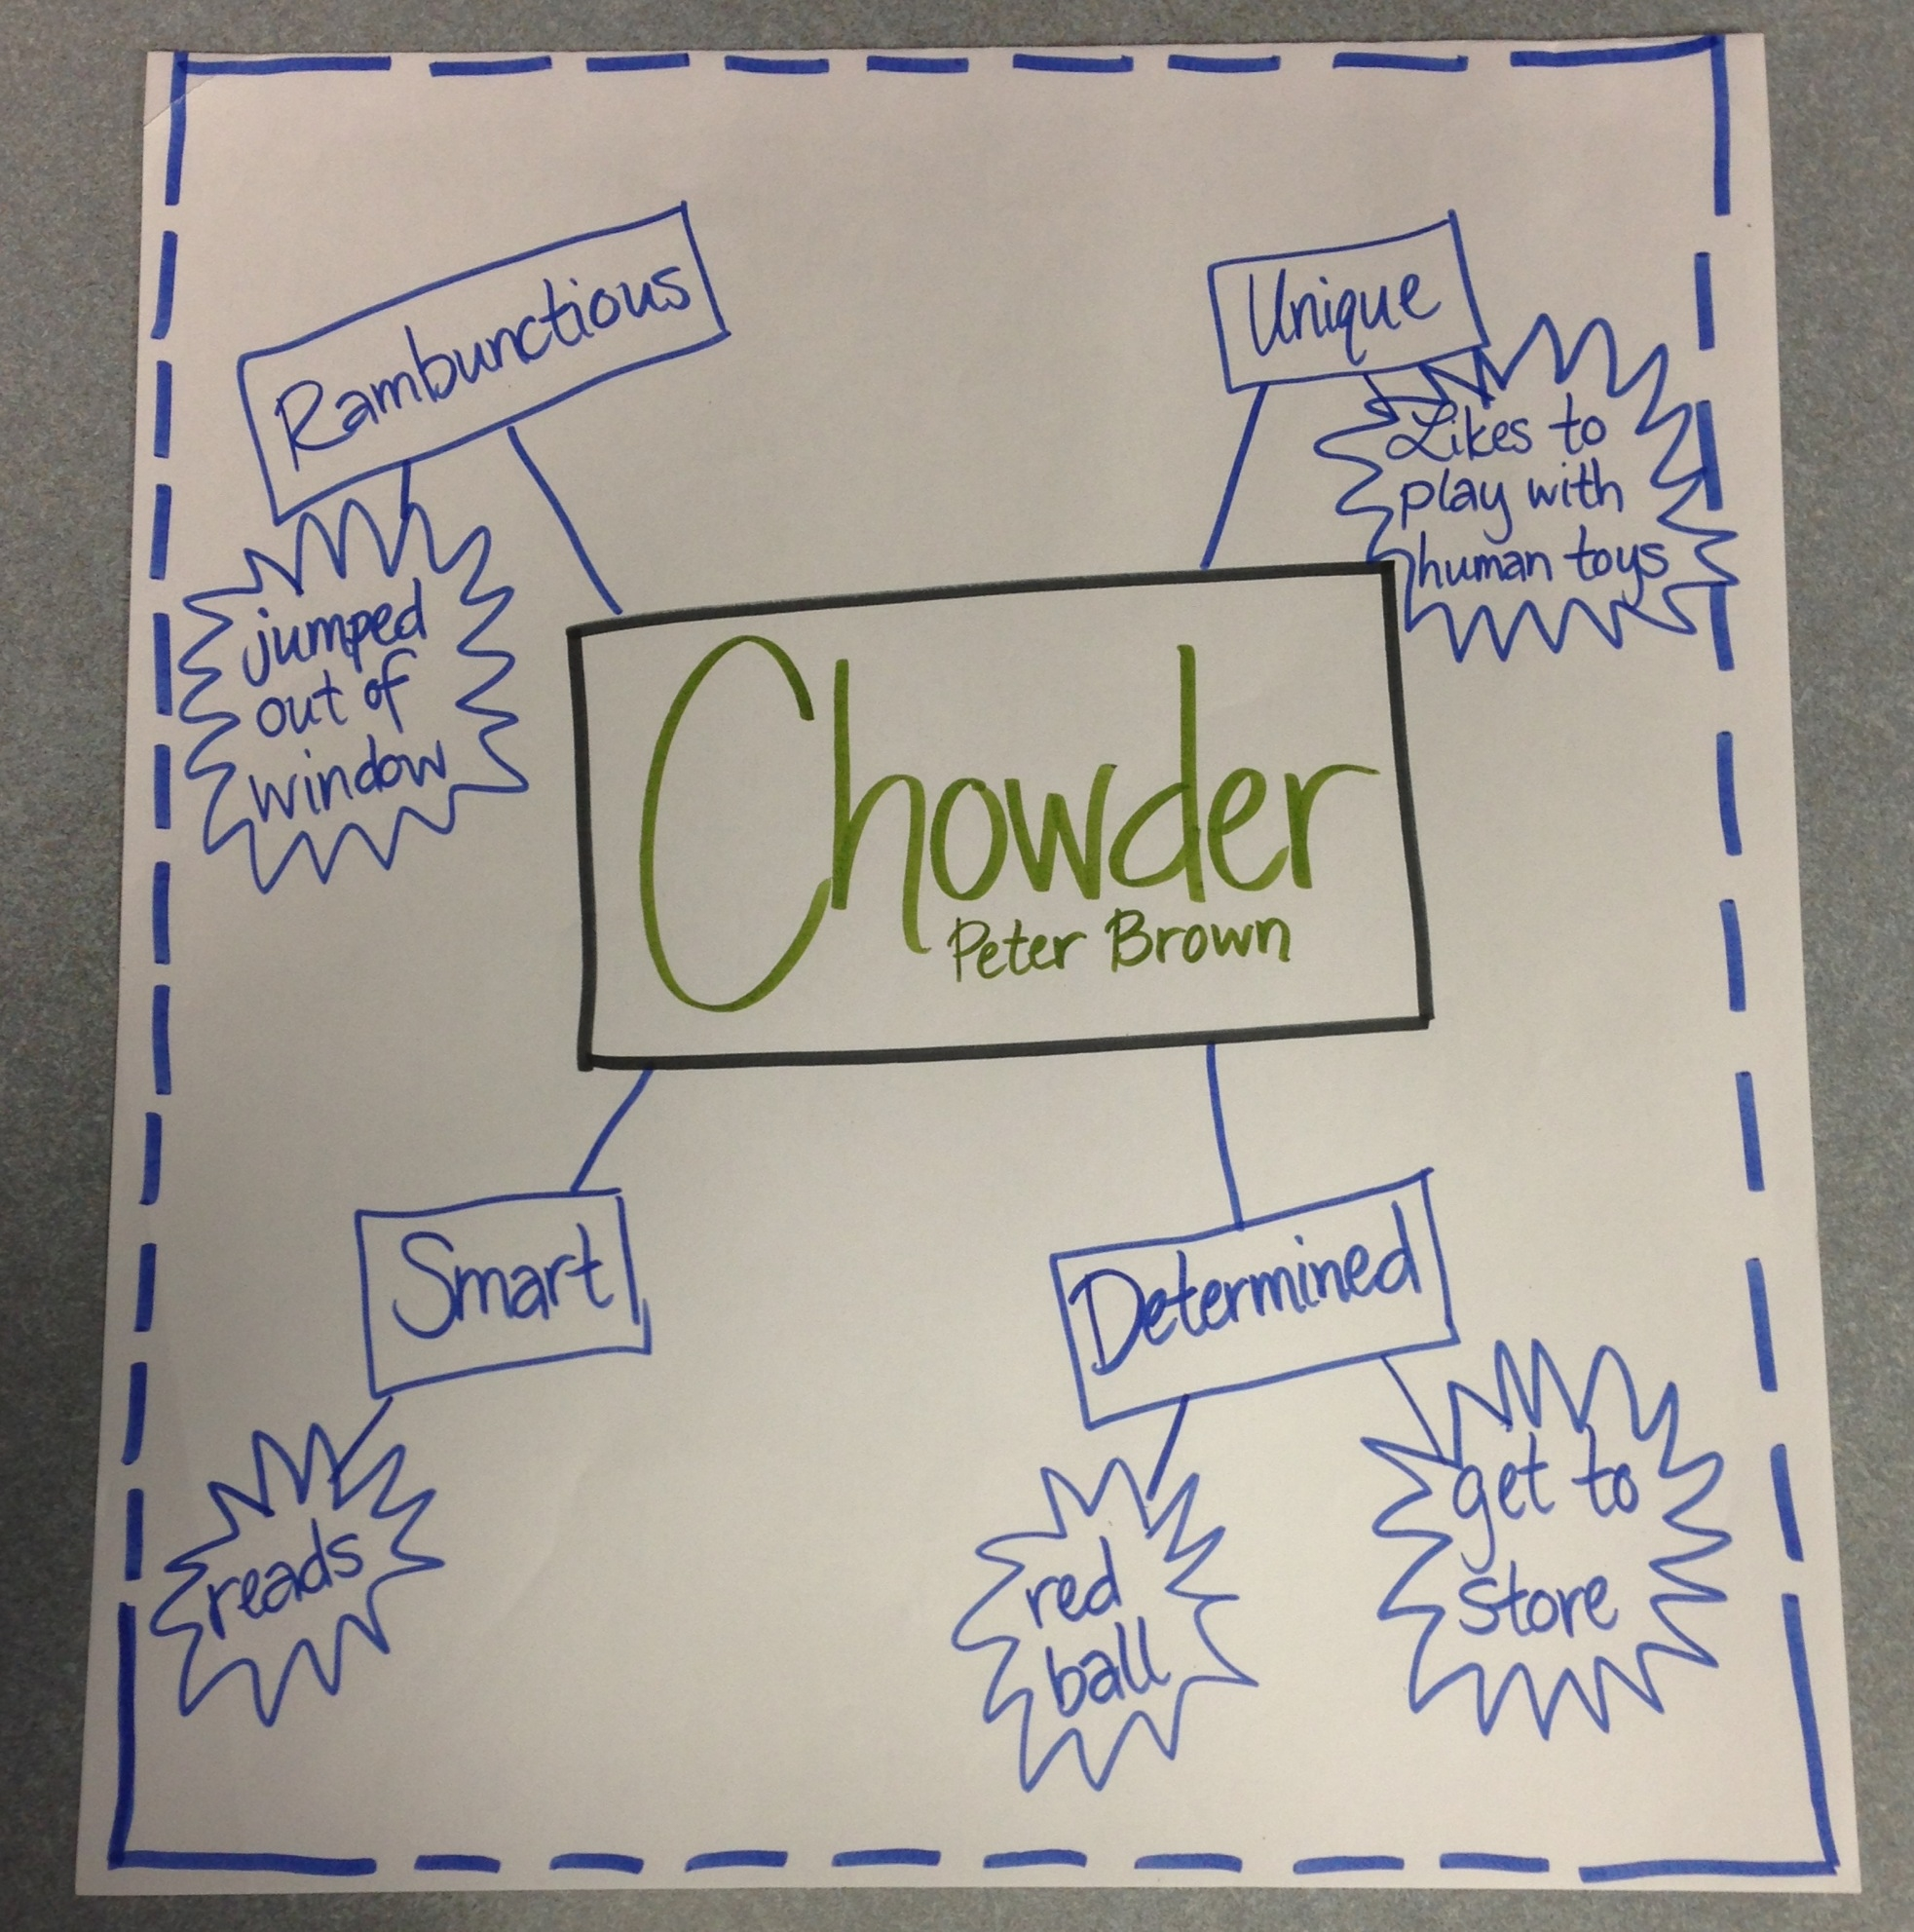 Character Map of Chowder